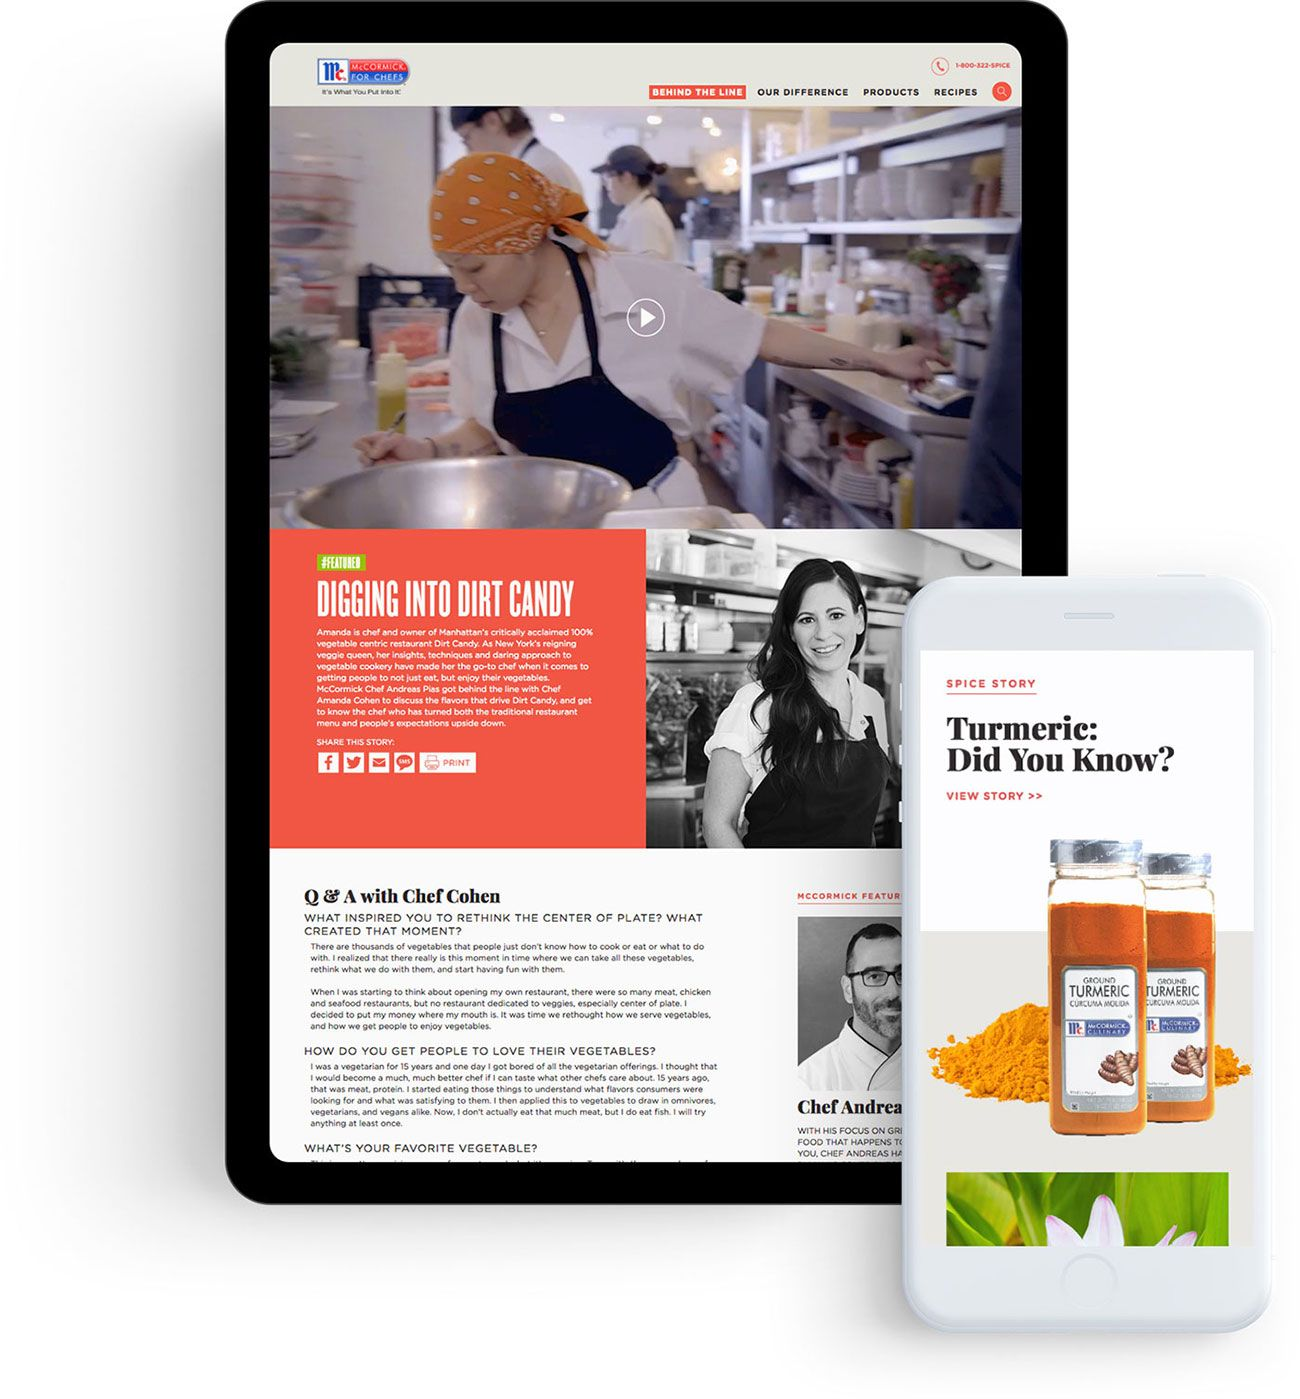 Snack Shop's website redesign of McCormick for Chefs on tablet and mobile devices